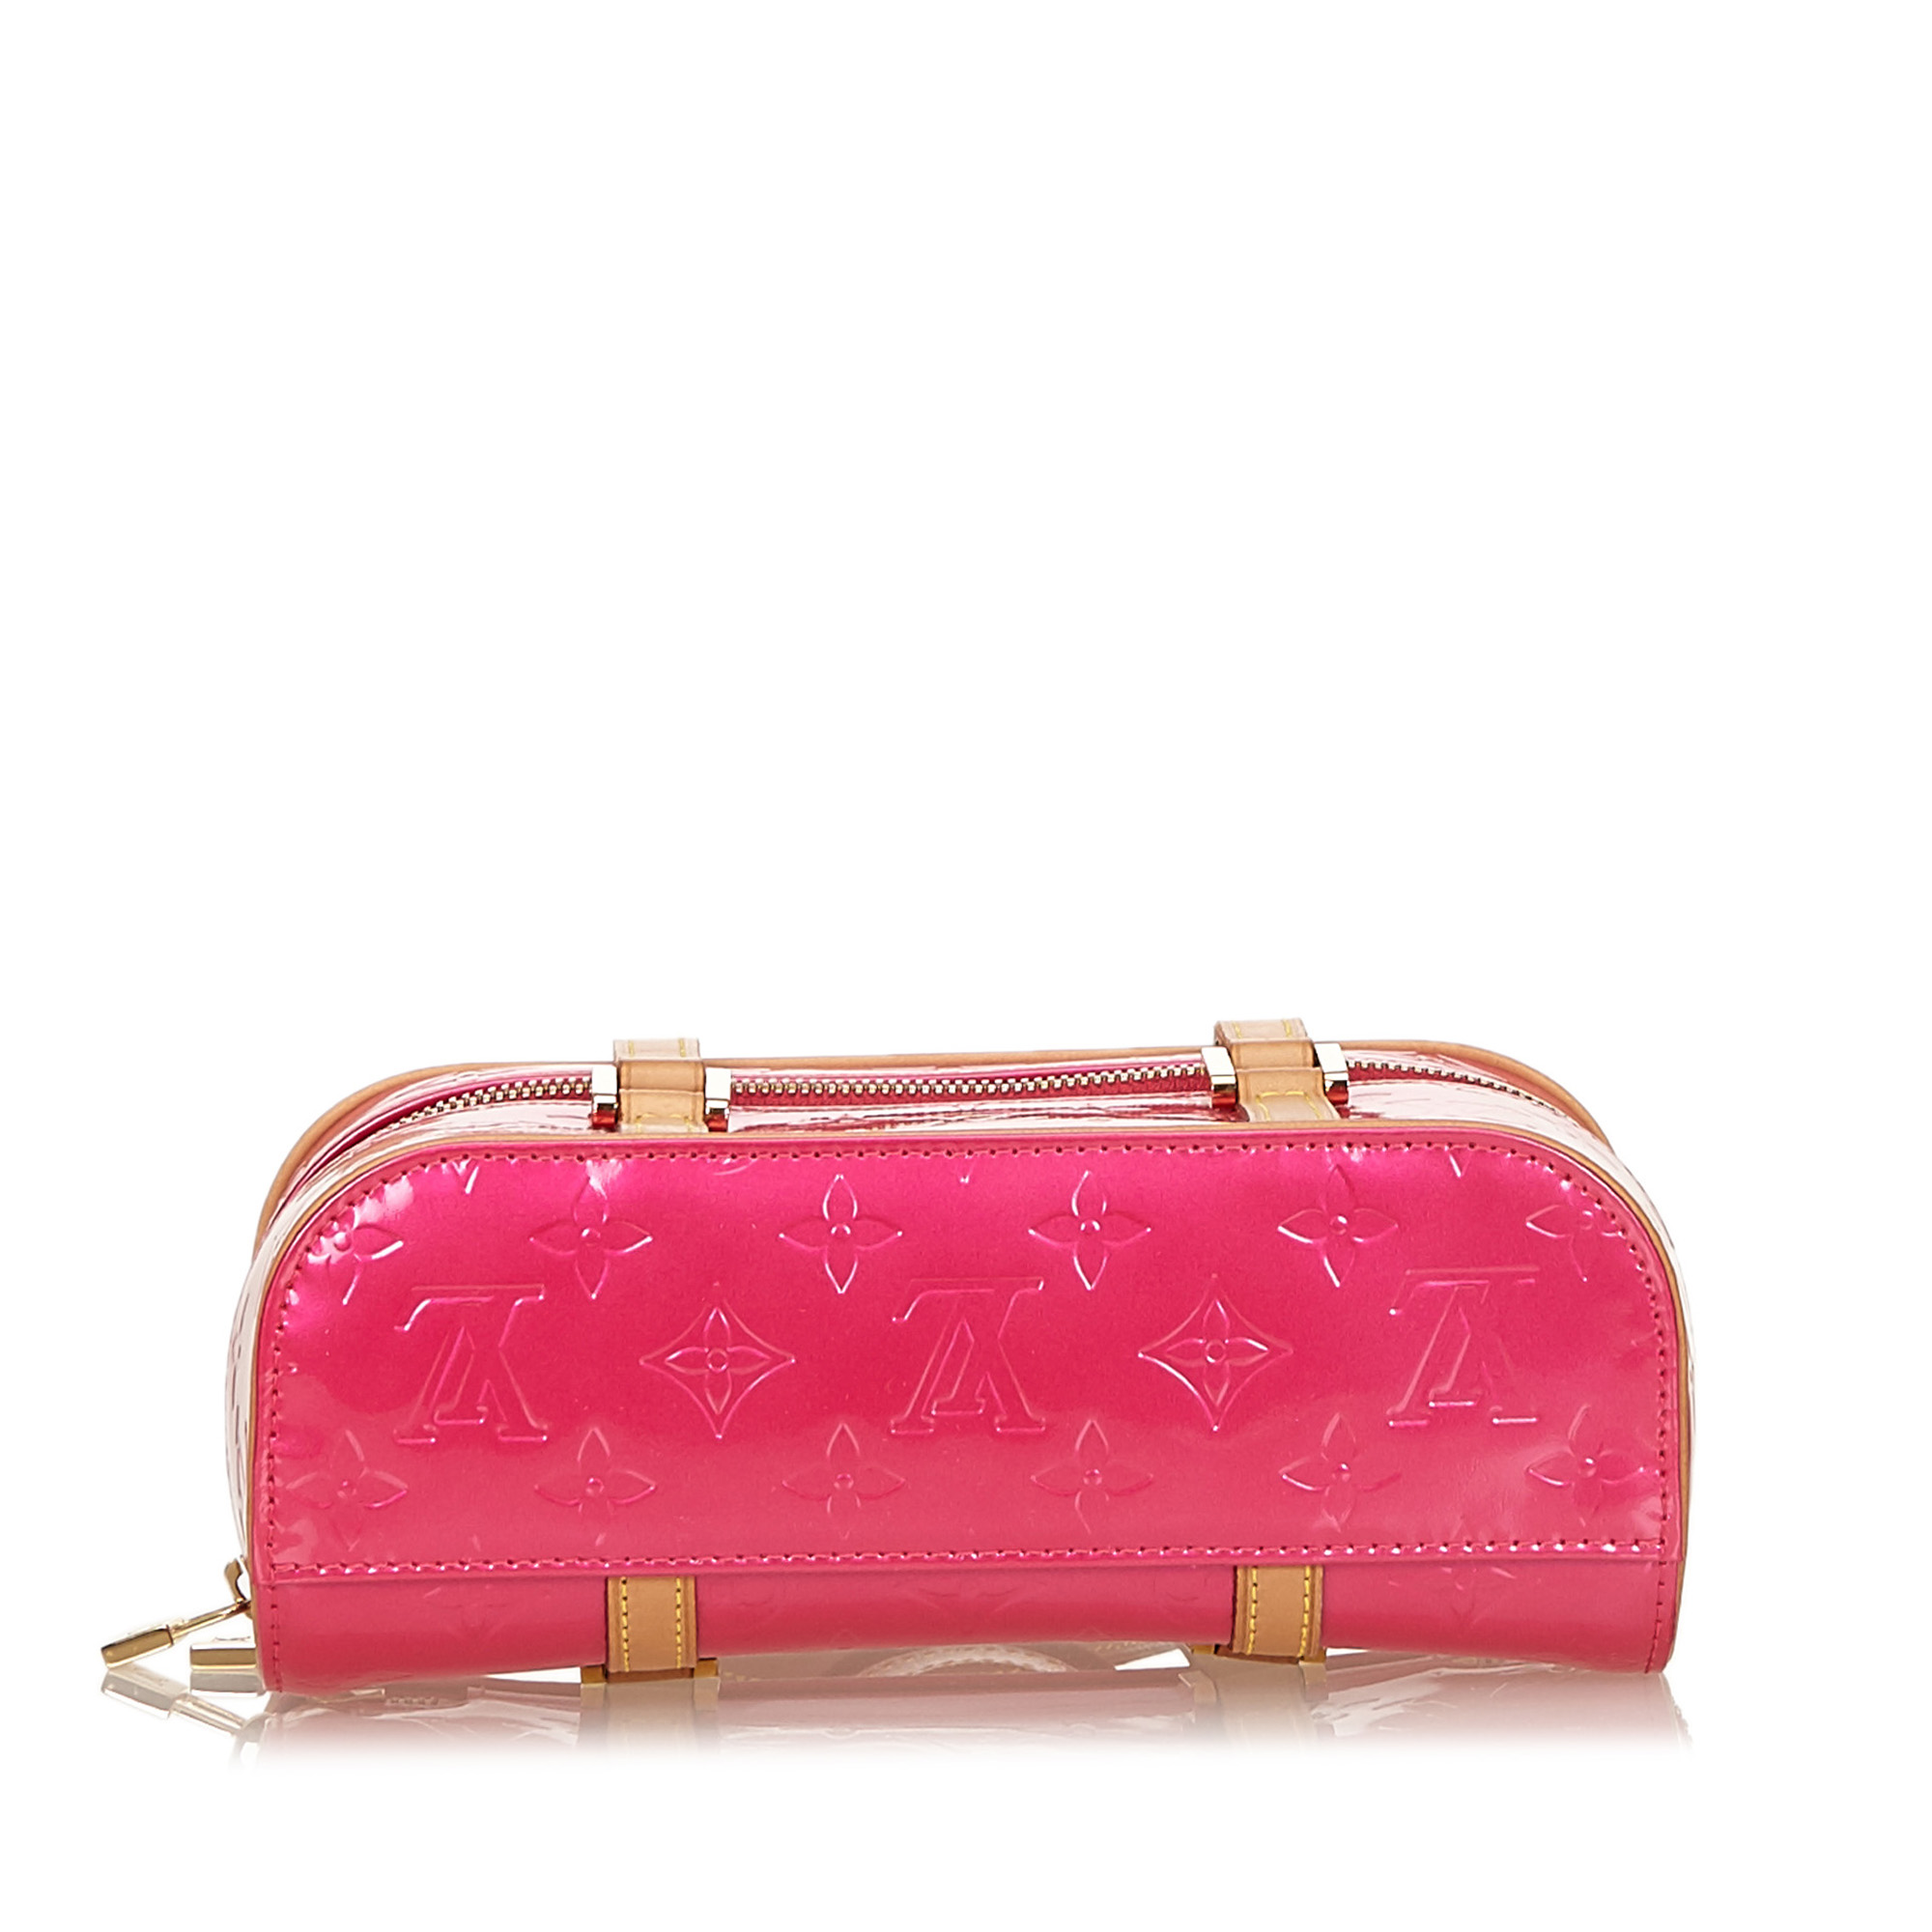 Louis Vuitton Pink Vernis Sullivan Horizontal PM